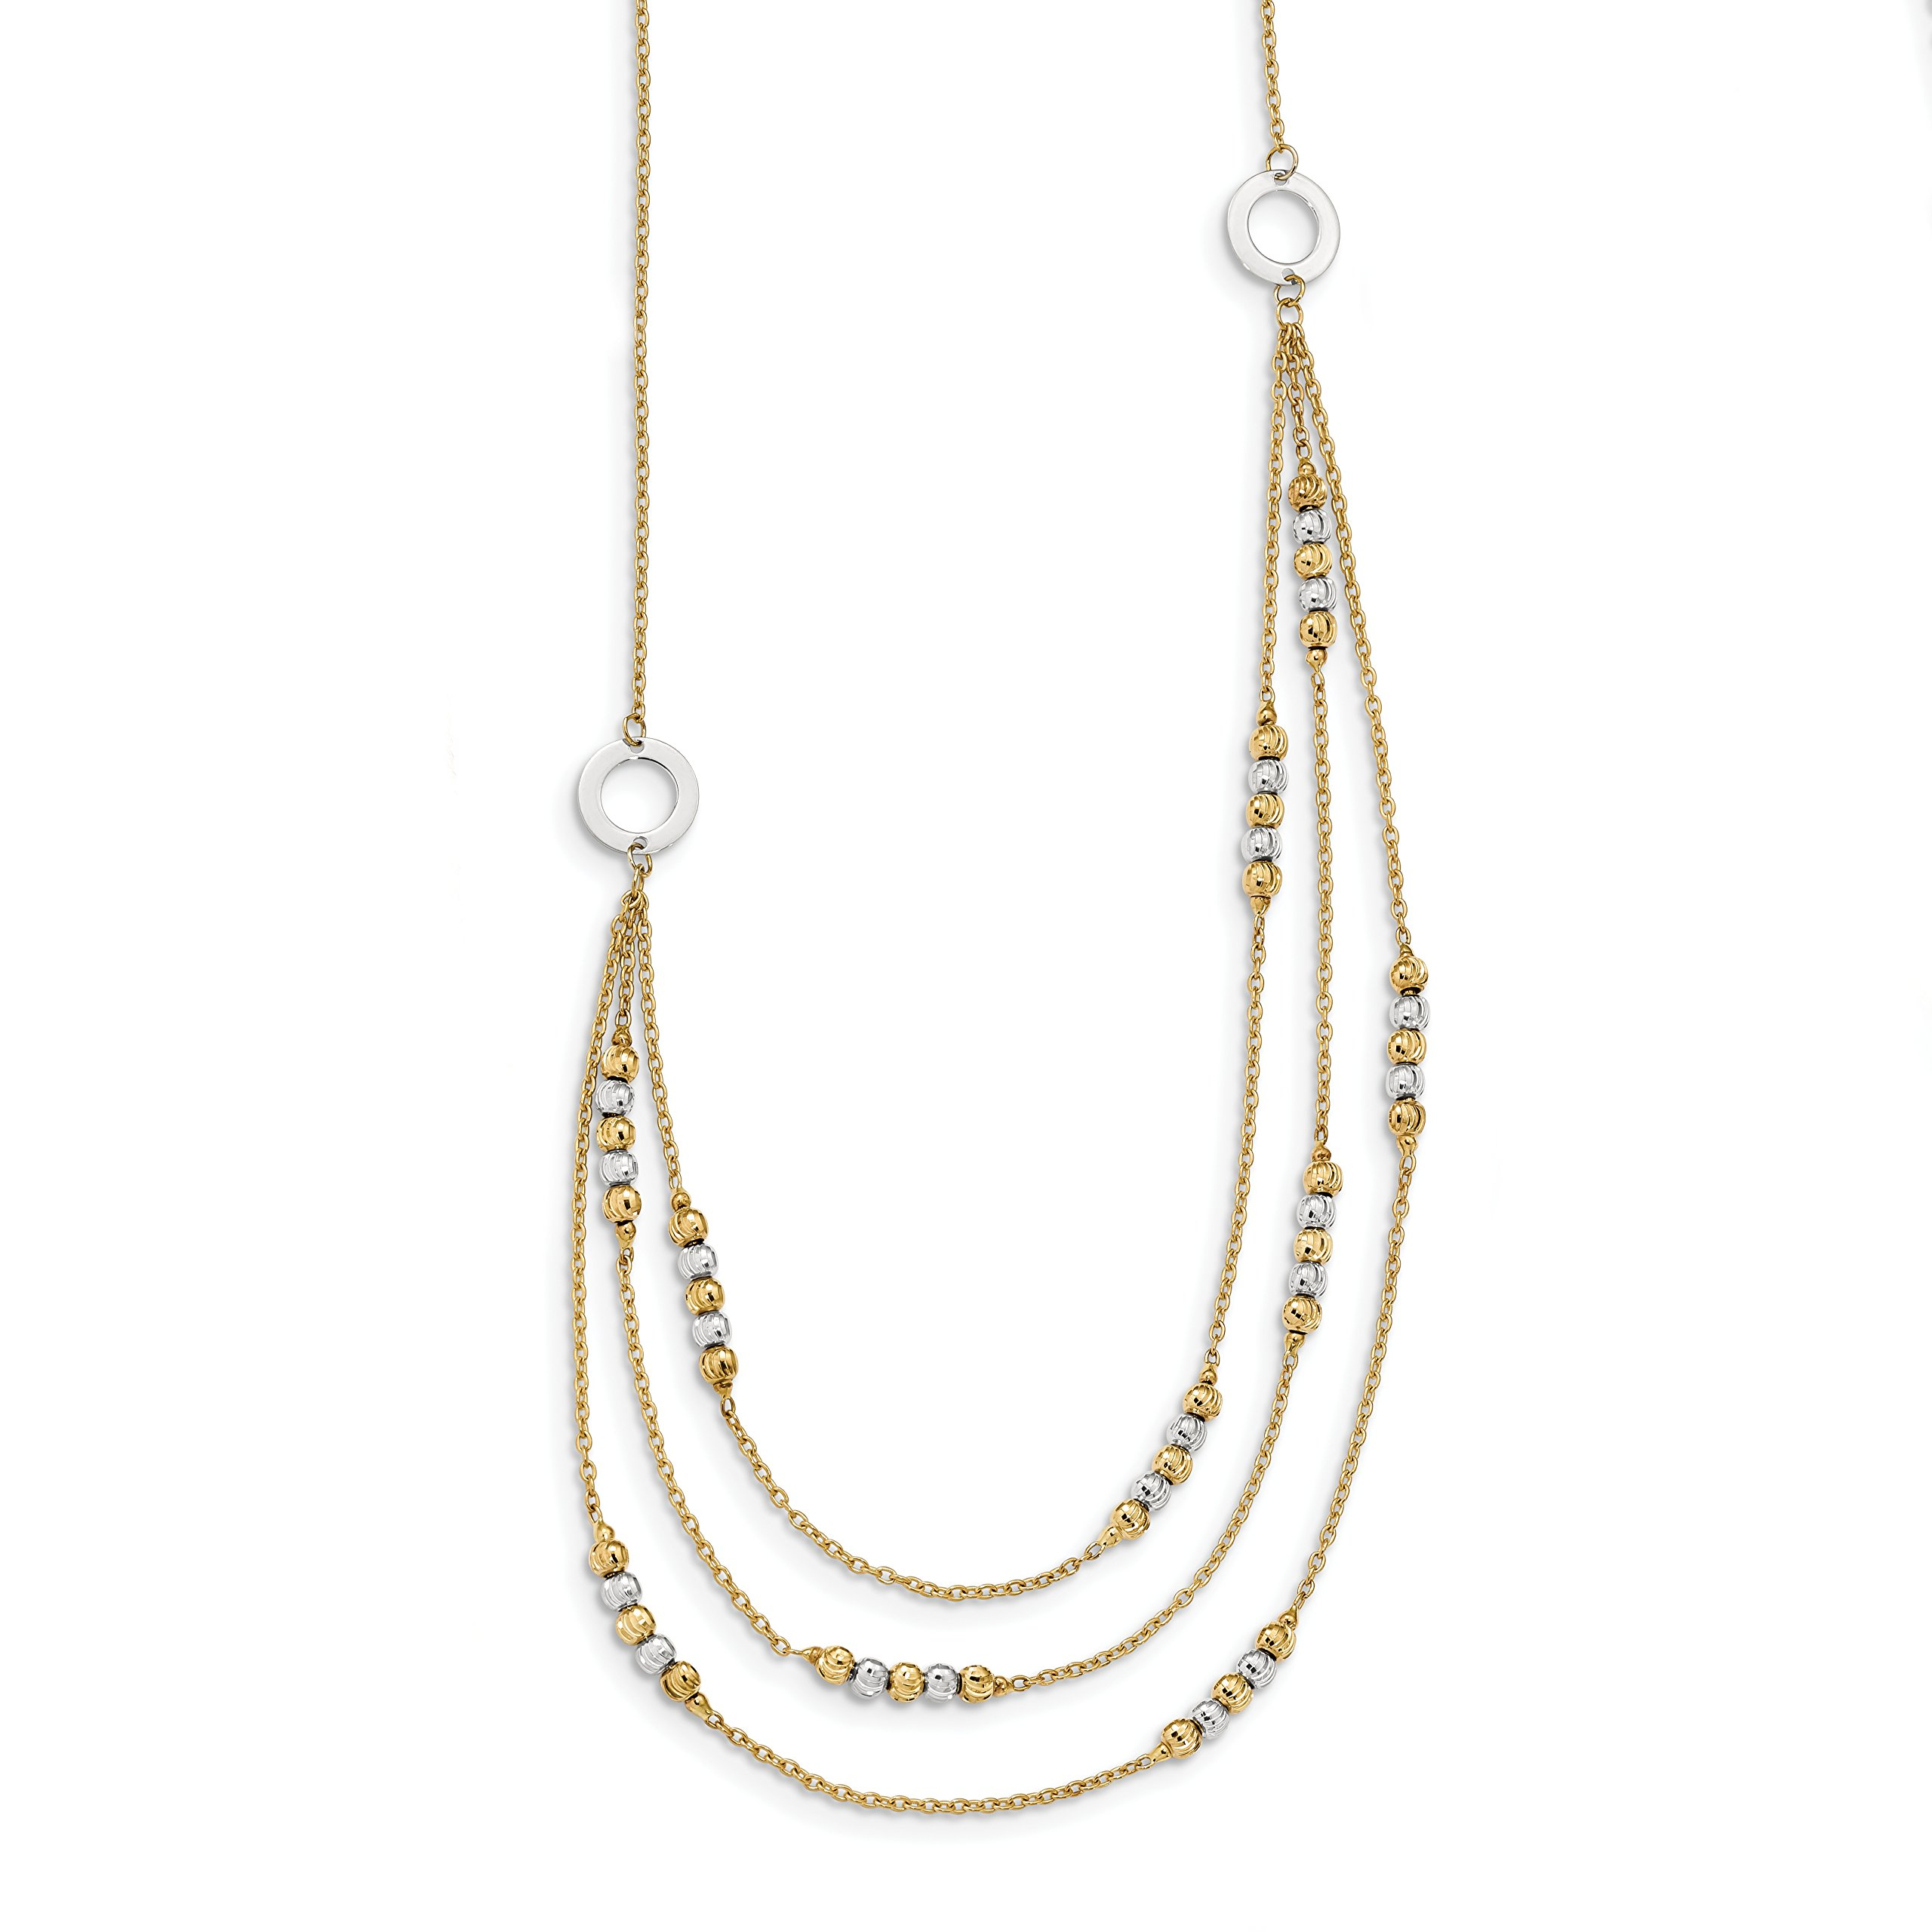 ICE CARATS 14k Two Tone Yellow Gold Beads 3 Strand Chain Necklace Fancy Bead Station Fine Jewelry Gift Set For Women Heart